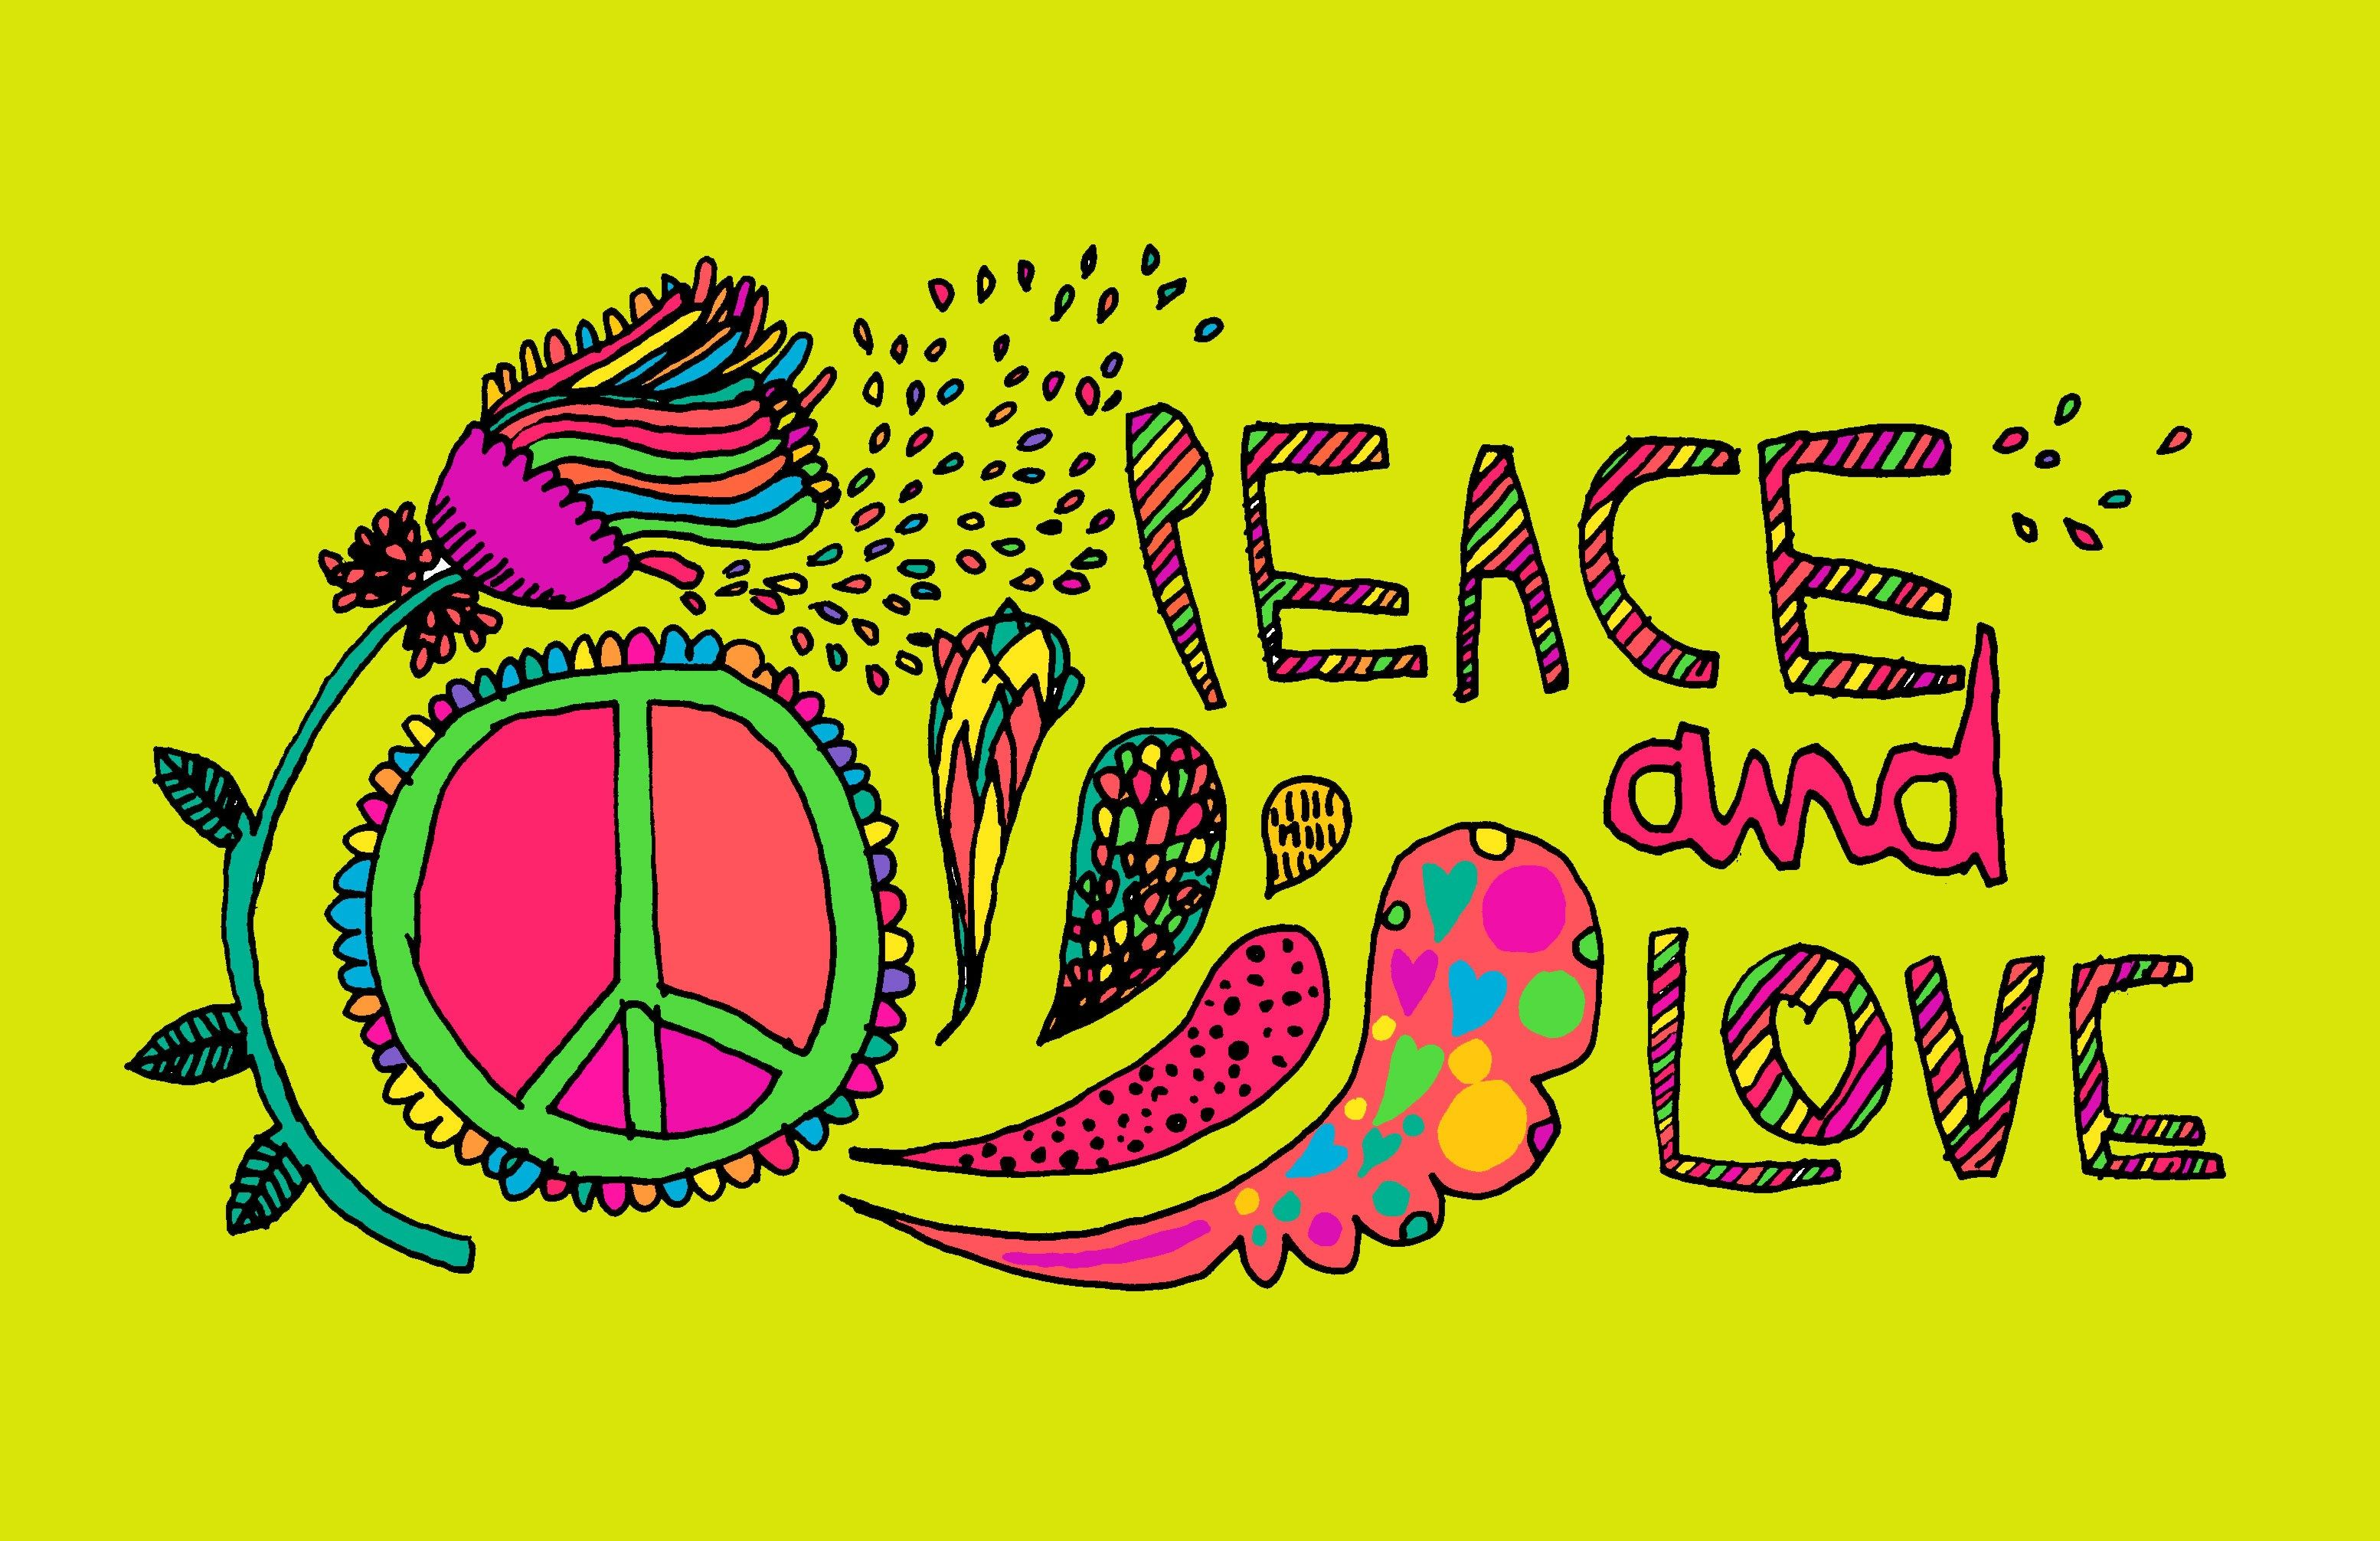 original hippie backgrounds hd images Simbolo de paz